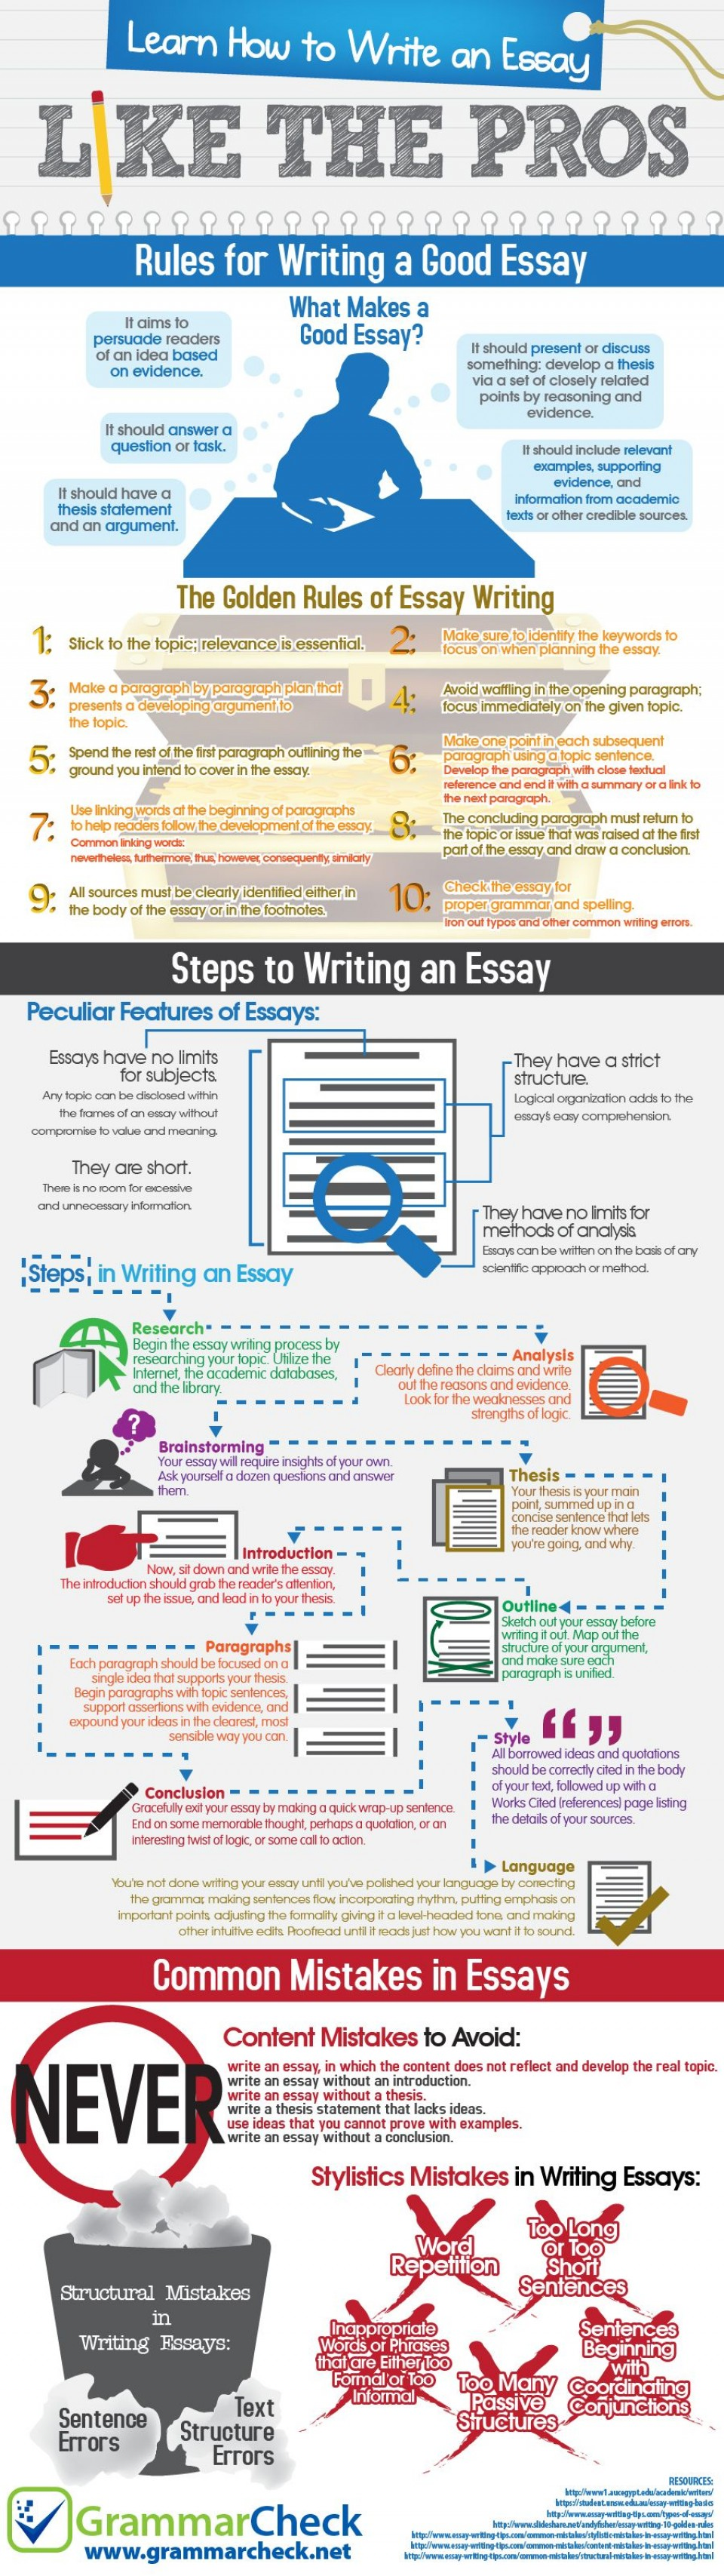 018 Write An Essay For Me Surprising Meaning In Gujarati Free My Online 960